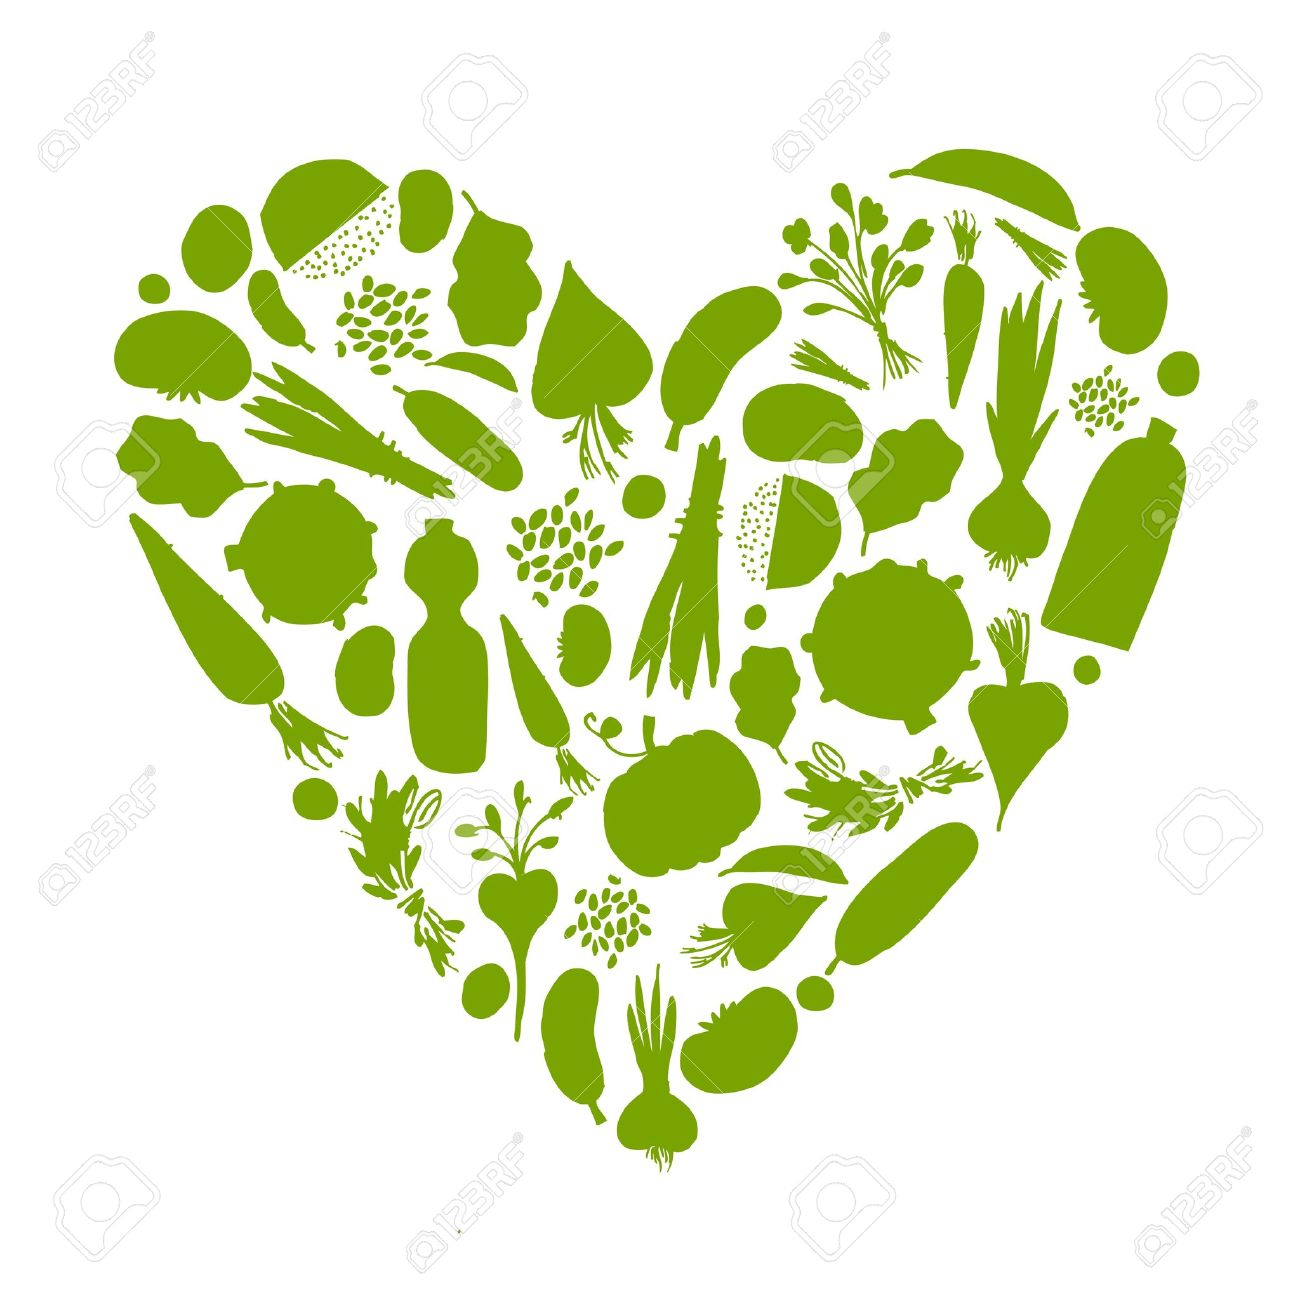 Healthy life - heart shape with vegetables for your design - 9348452